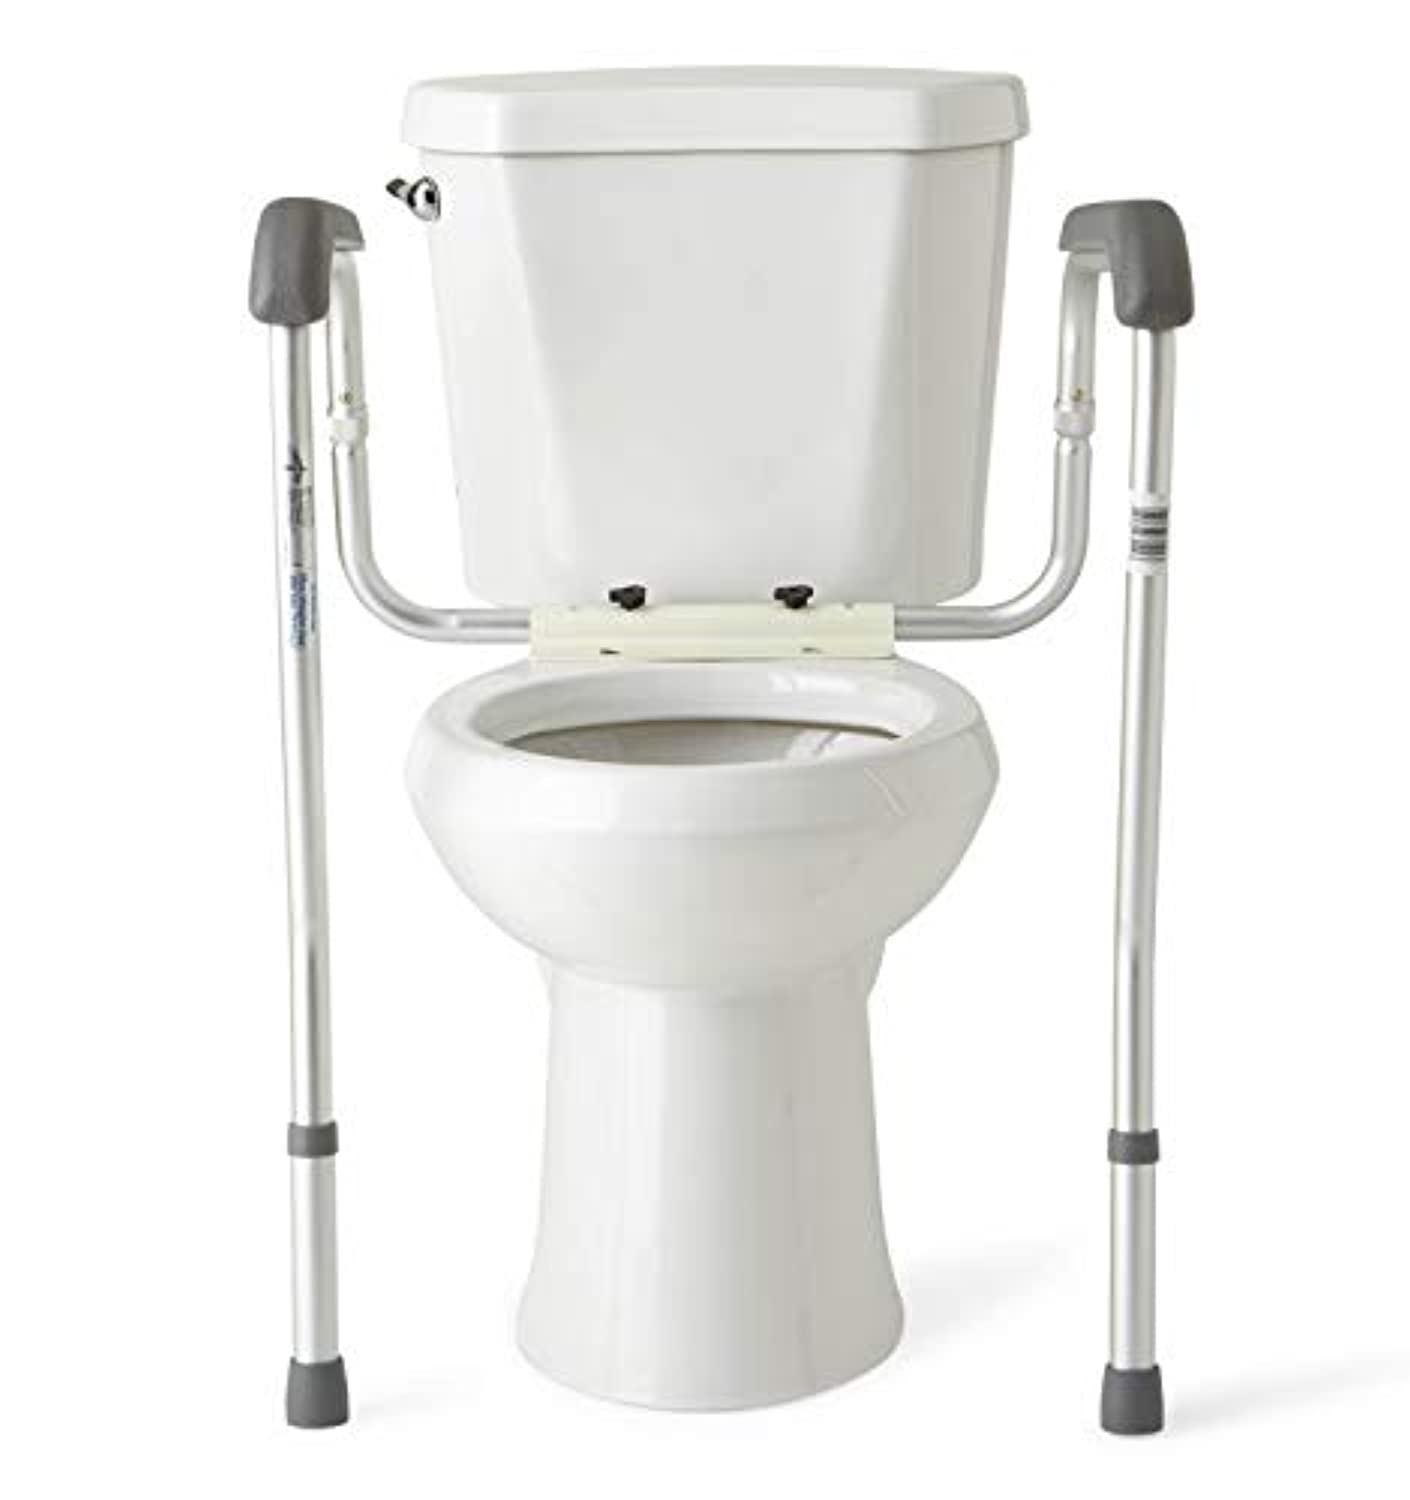 Classier: Buy Medline Medline Toilet Safety Rails, Safety Frame for Toilet with Easy Installation, Height Adjustable Legs, Bathroom Safety